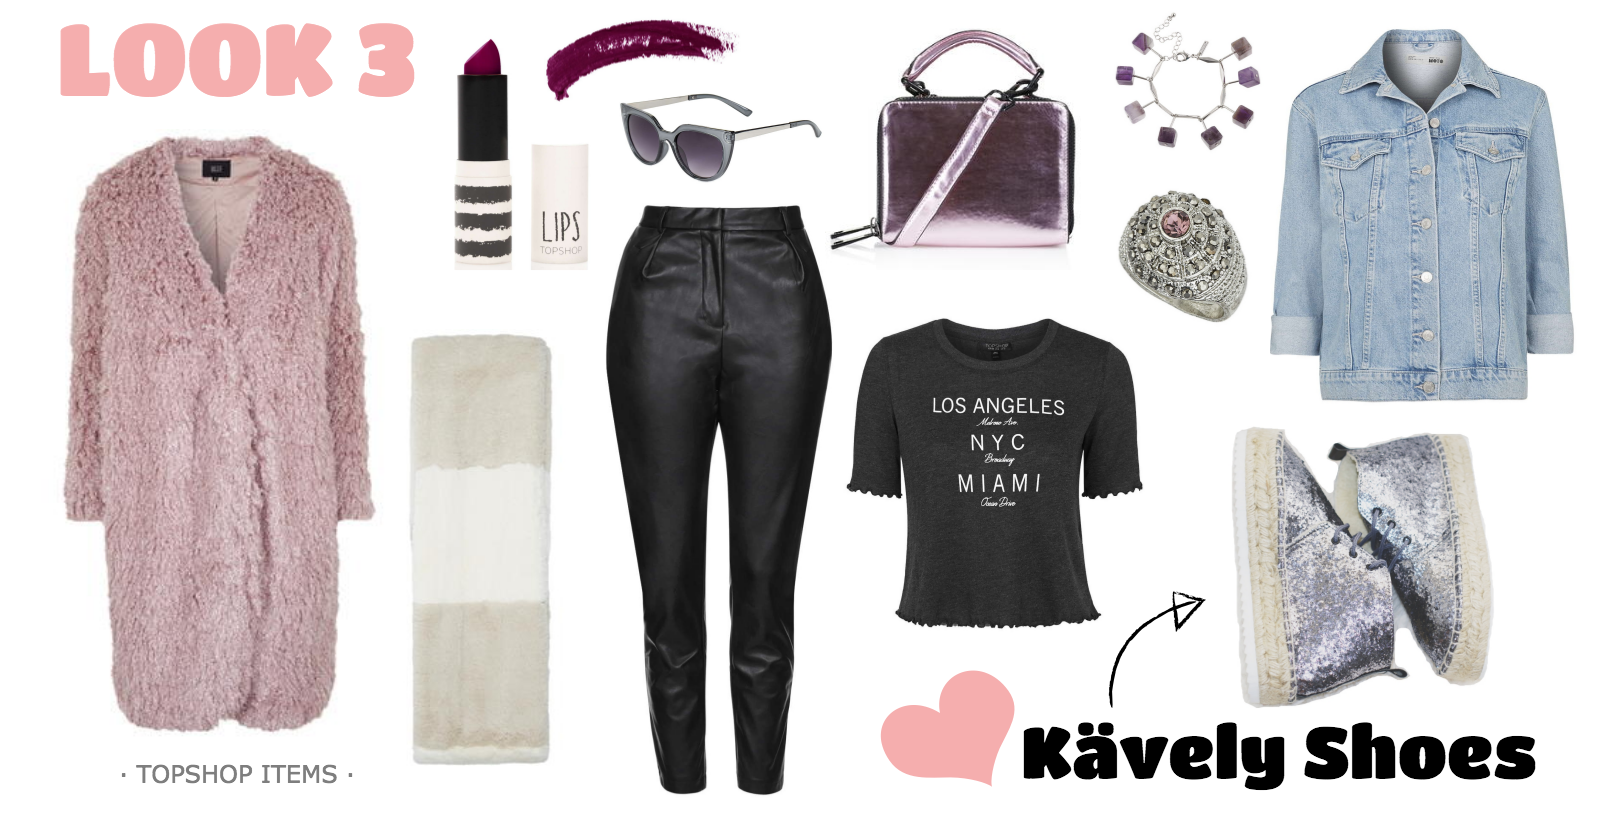 kavely-espadrilles-outfit